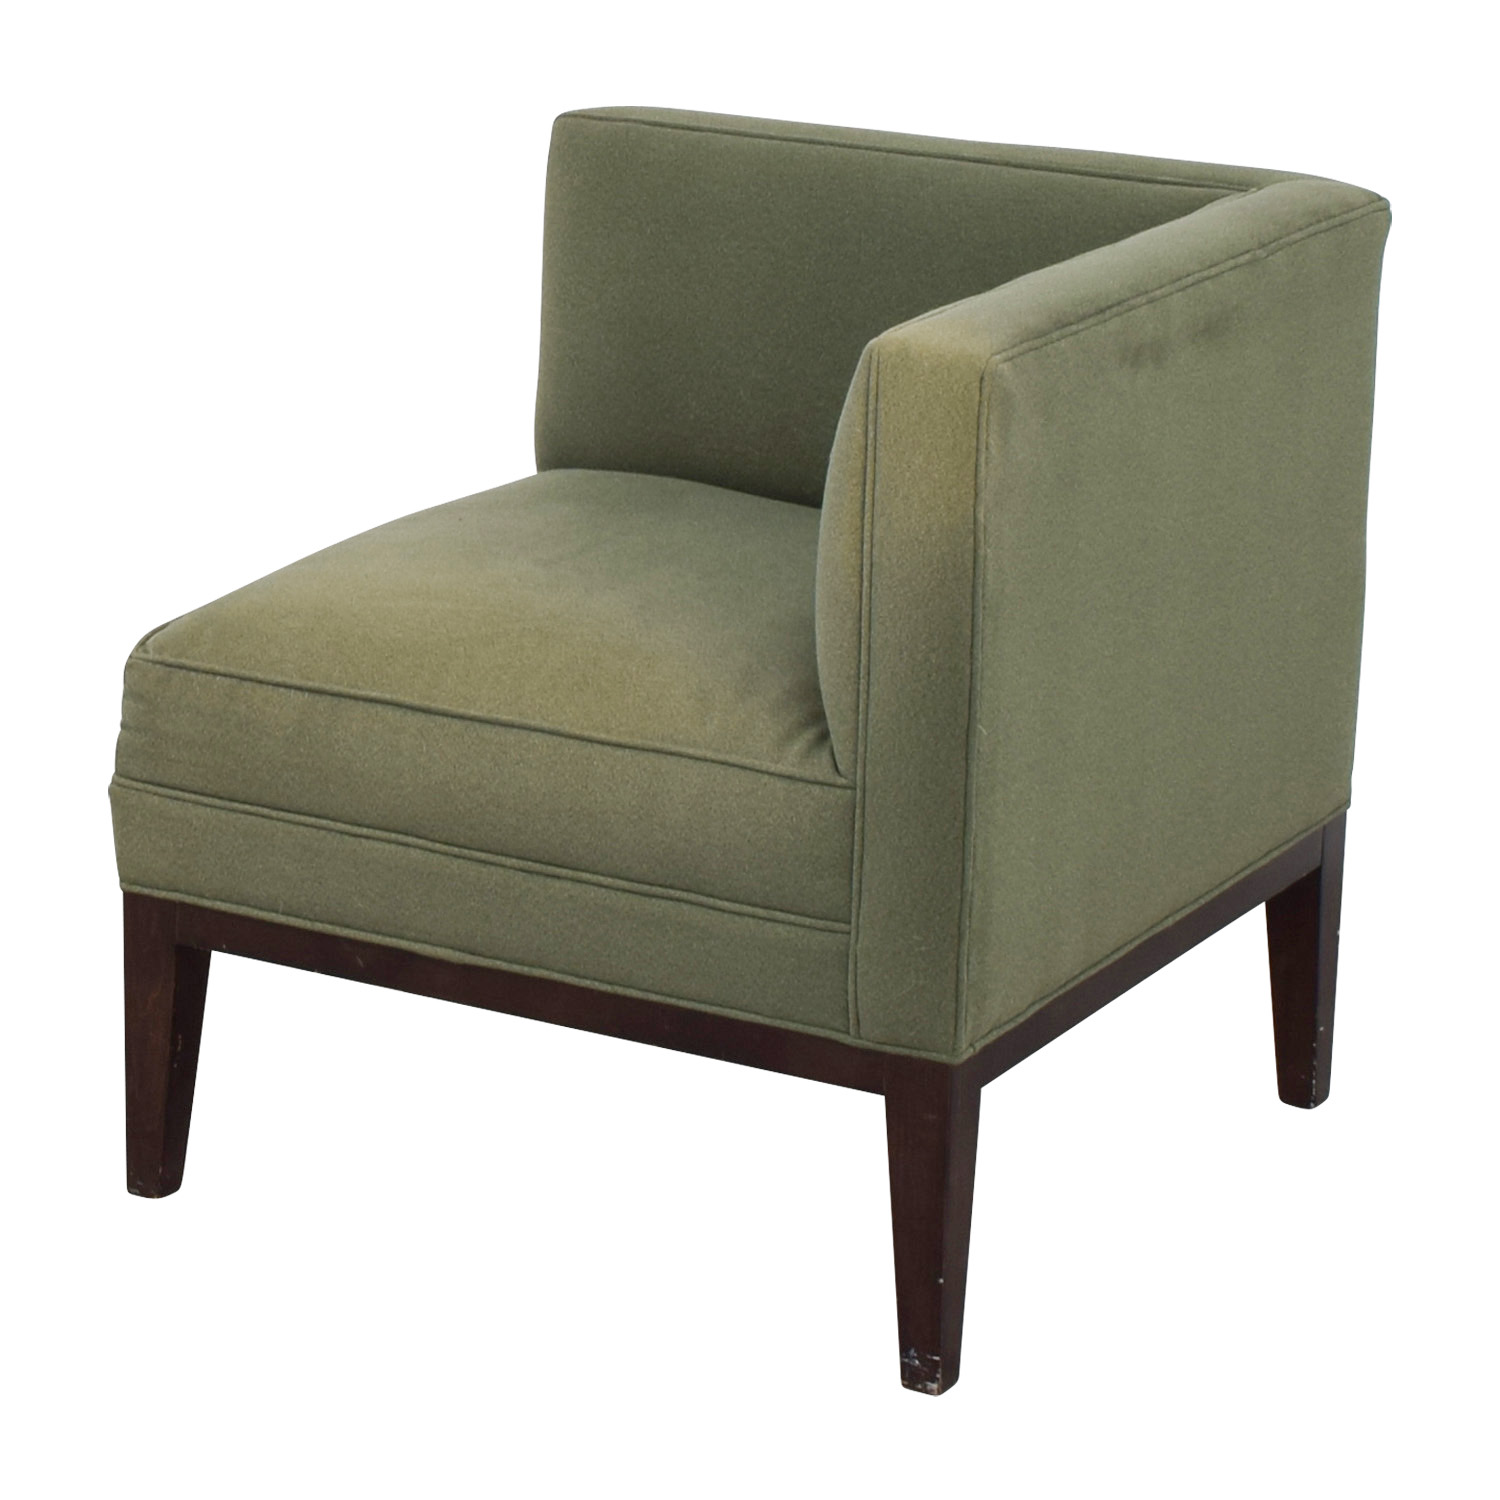 ... Buy Mitchell Gold + Bob Williams Sage Green Corner Accent Chair  Mitchell Gold + Bob Williams ...